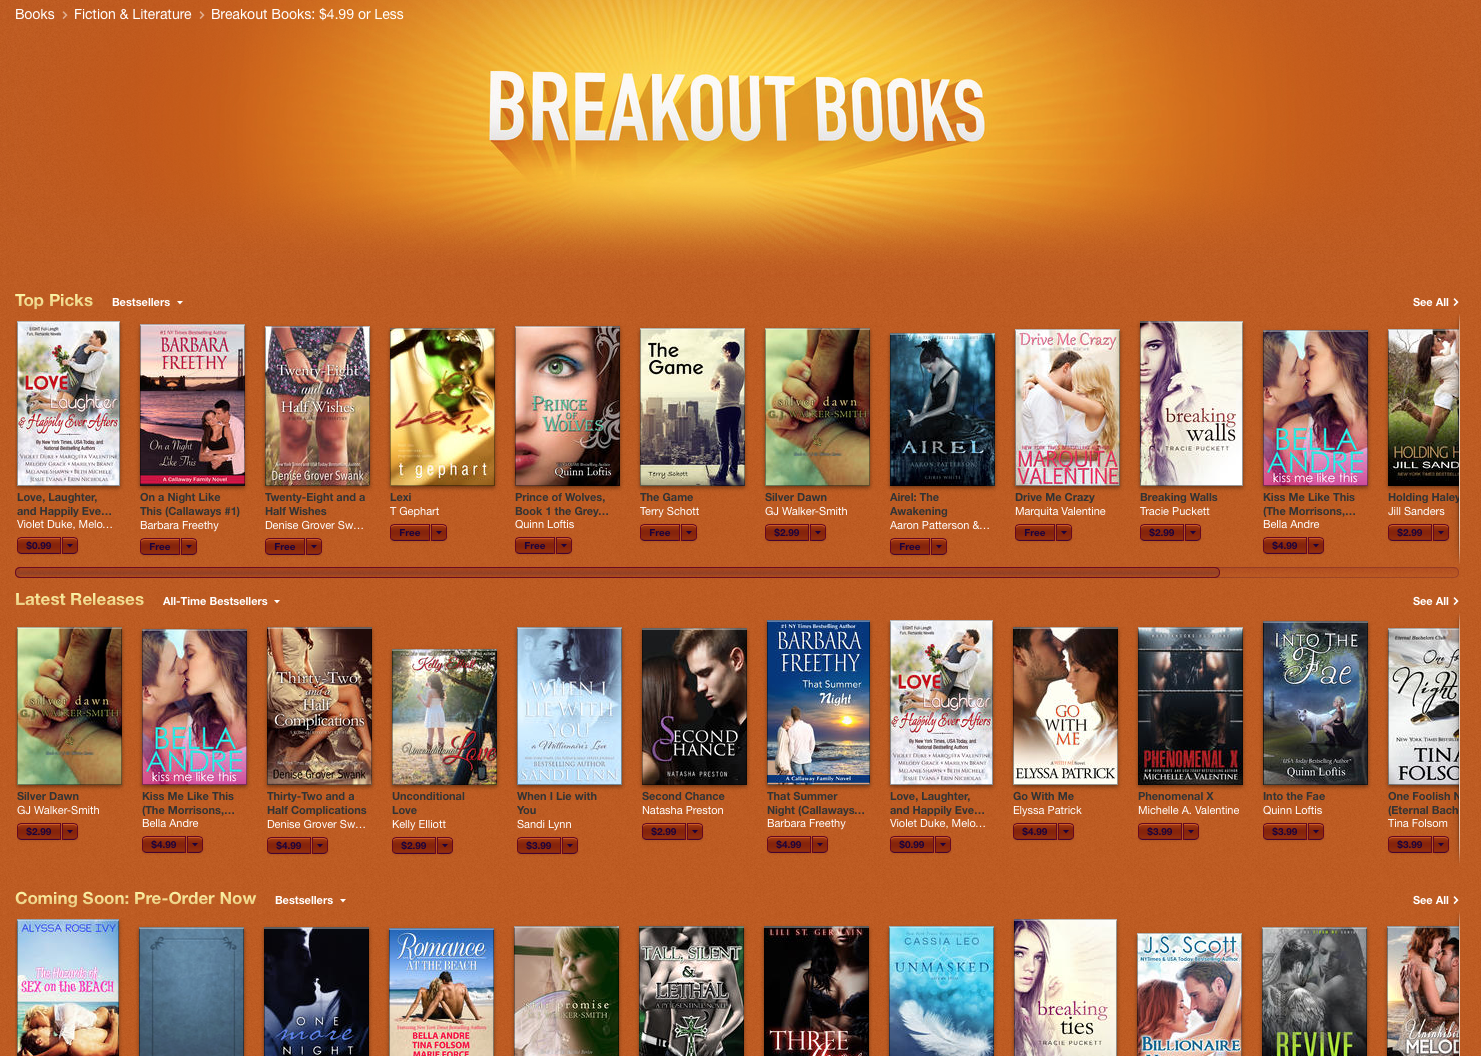 Image Of Breakout Books Section In The Ibooks Store